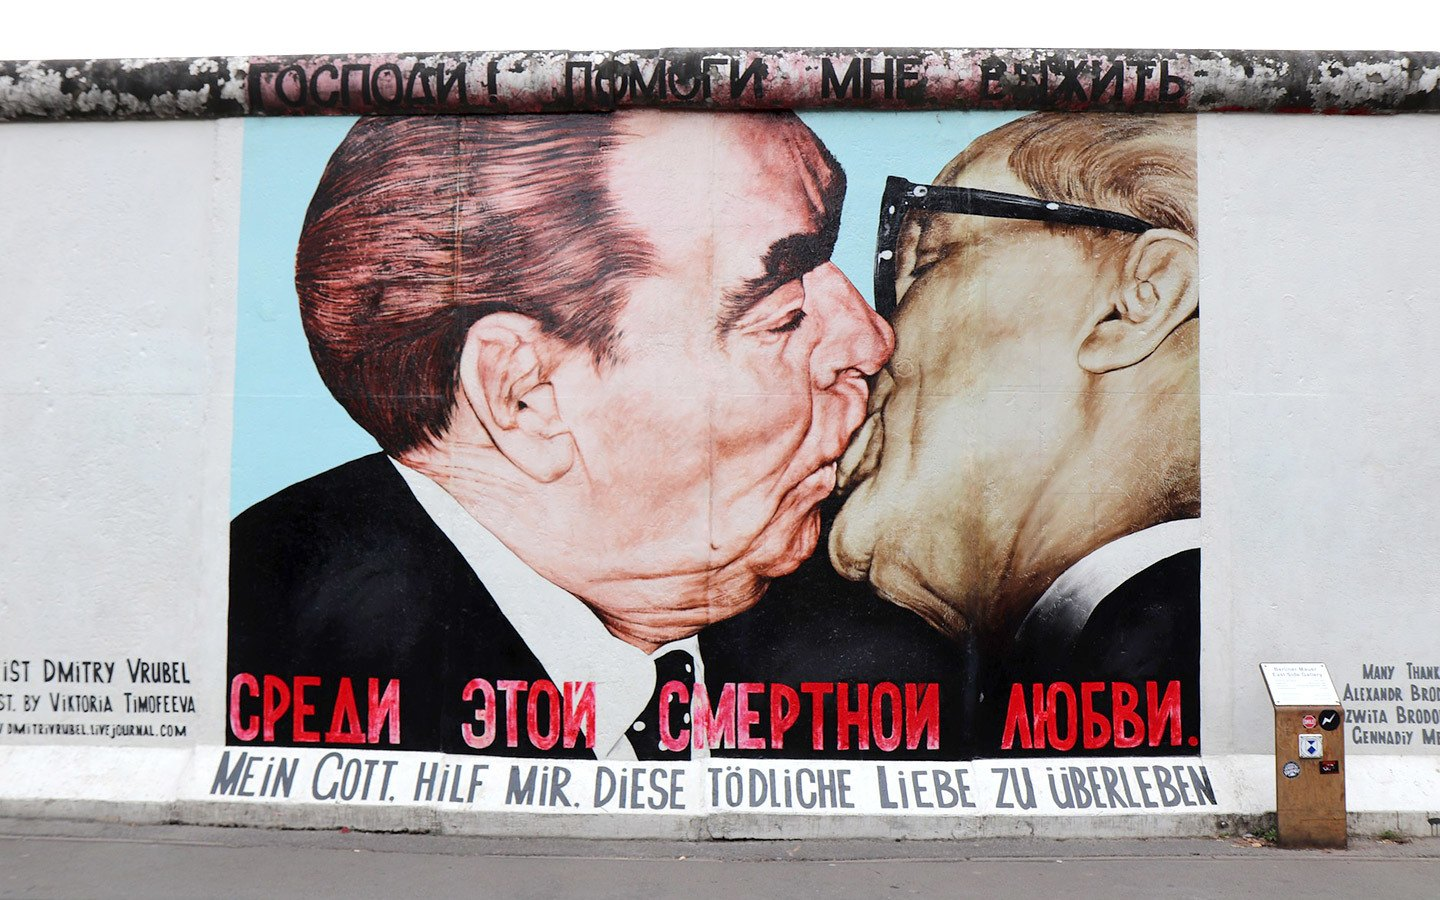 Artwork in Berlin's East Side Gallery